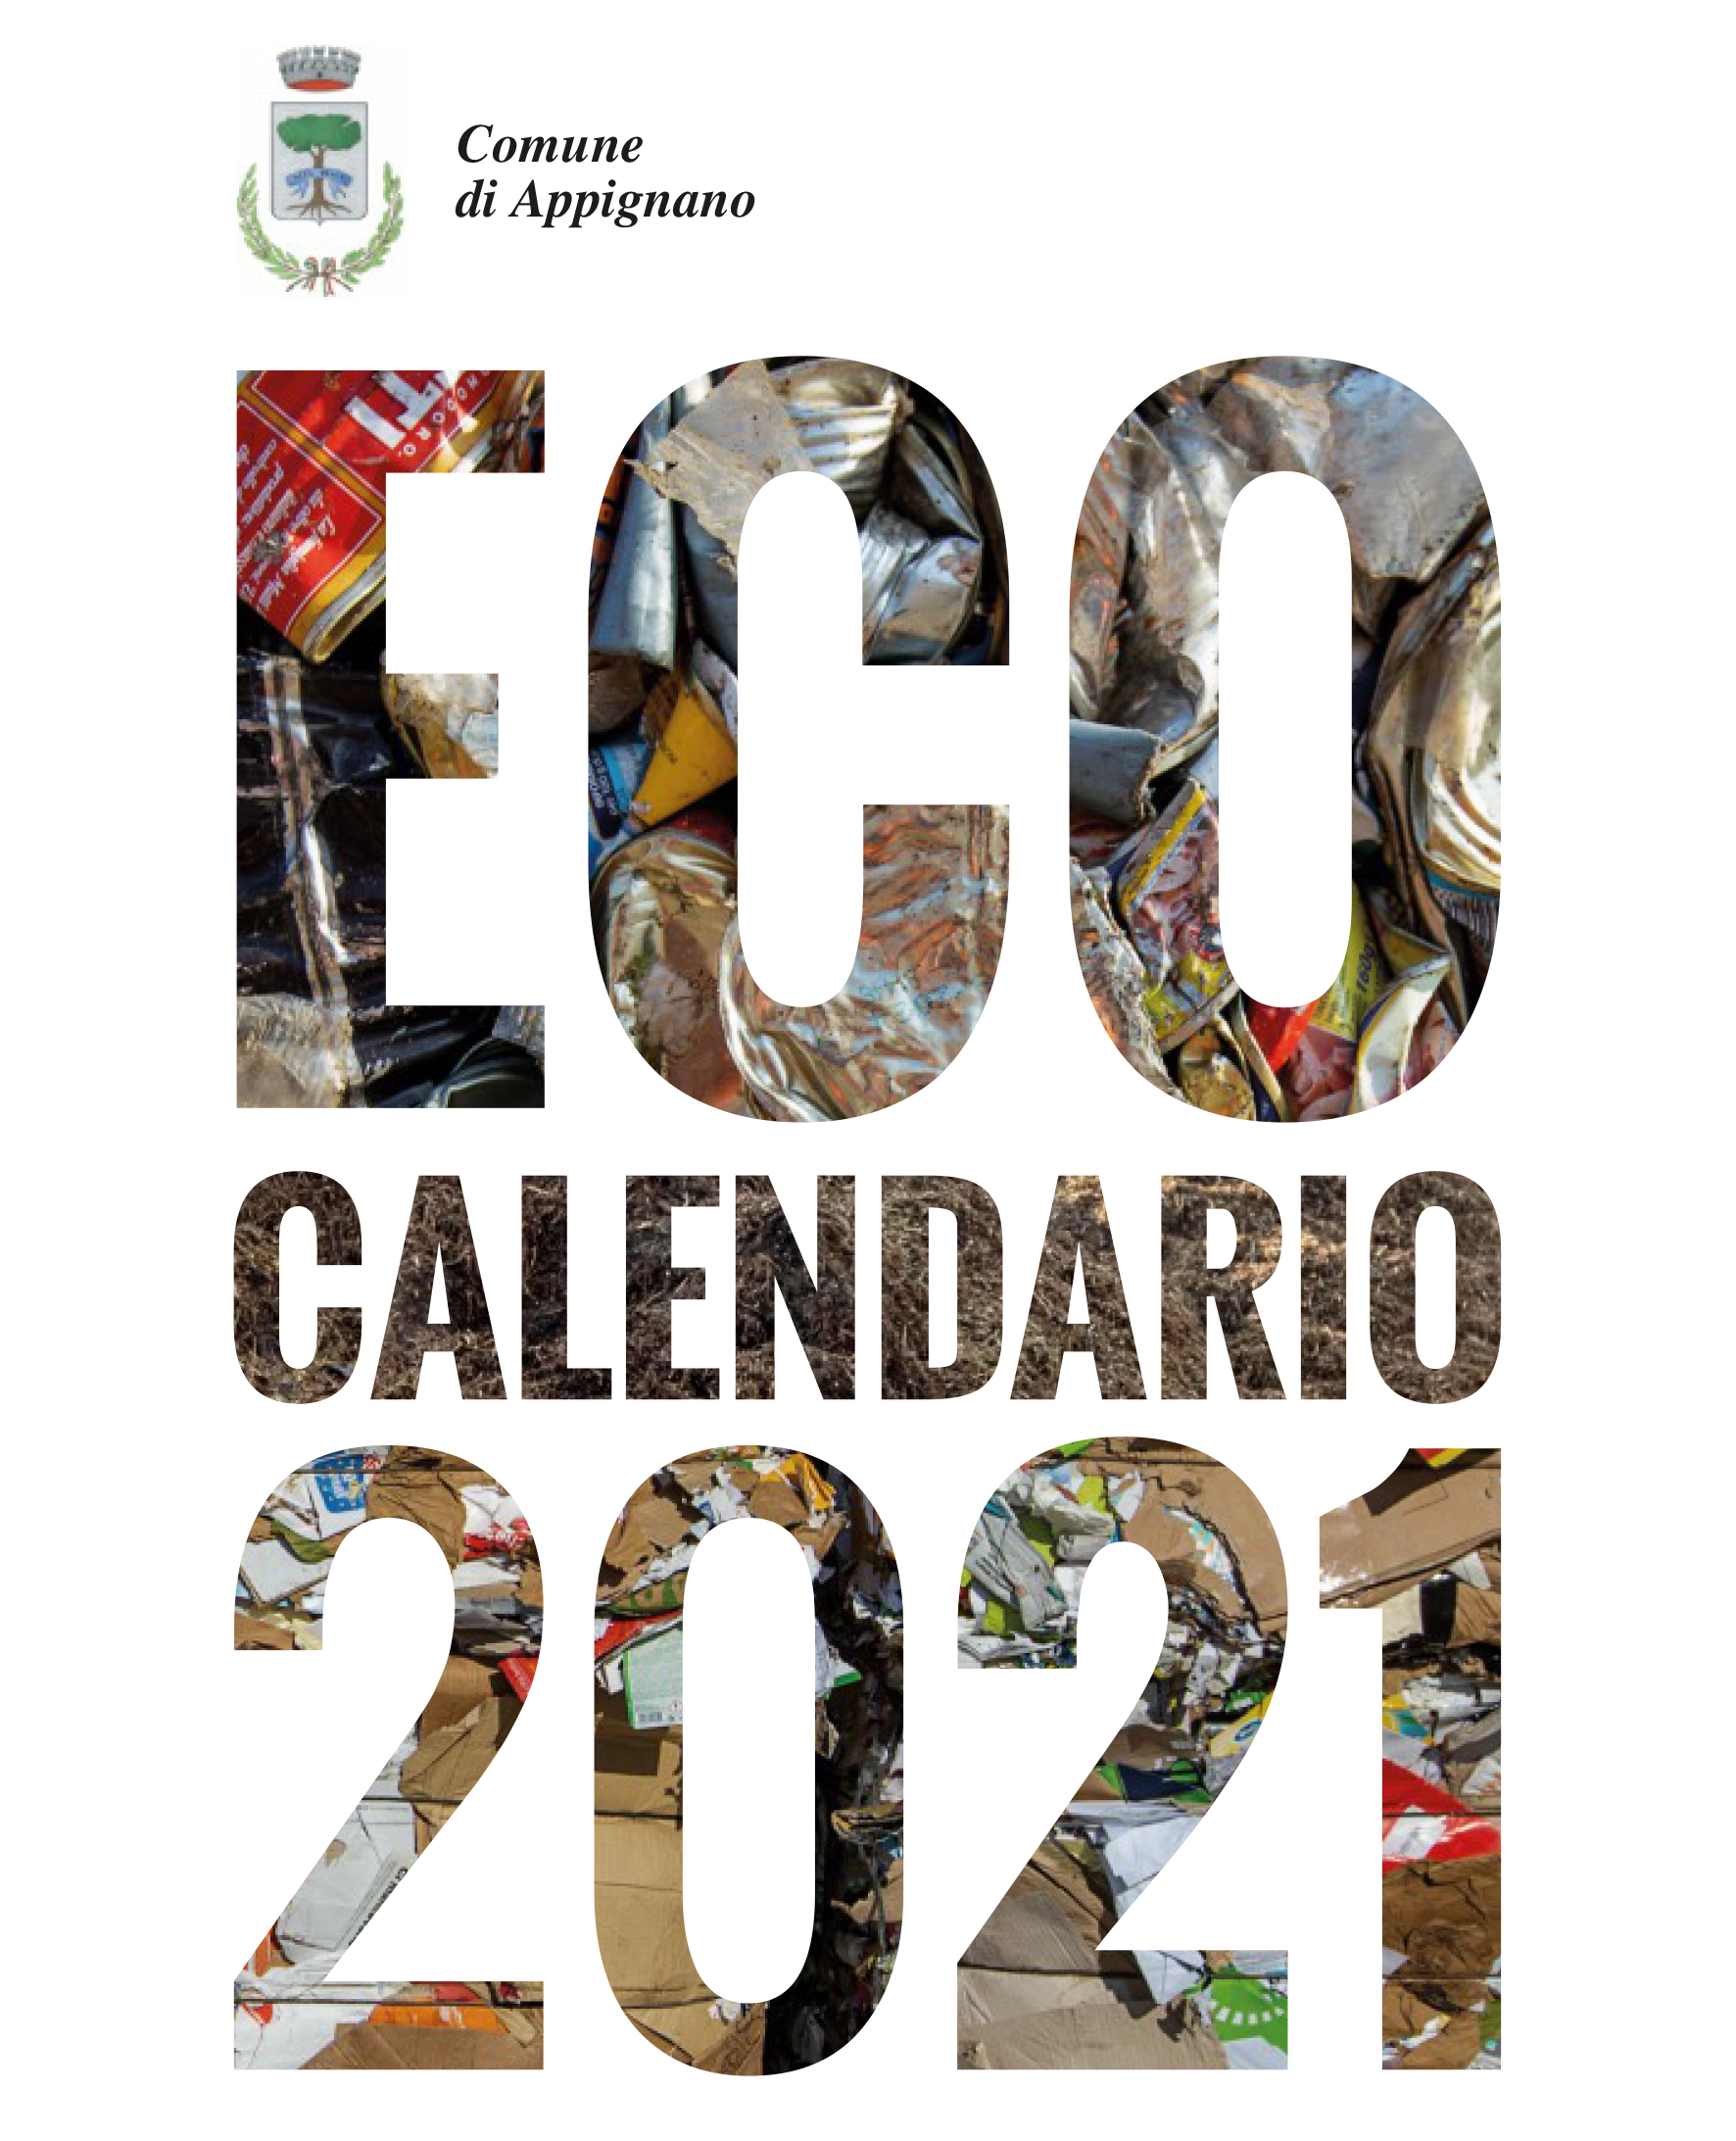 Eco Calendario 2021 - APPIGNANO.cdr